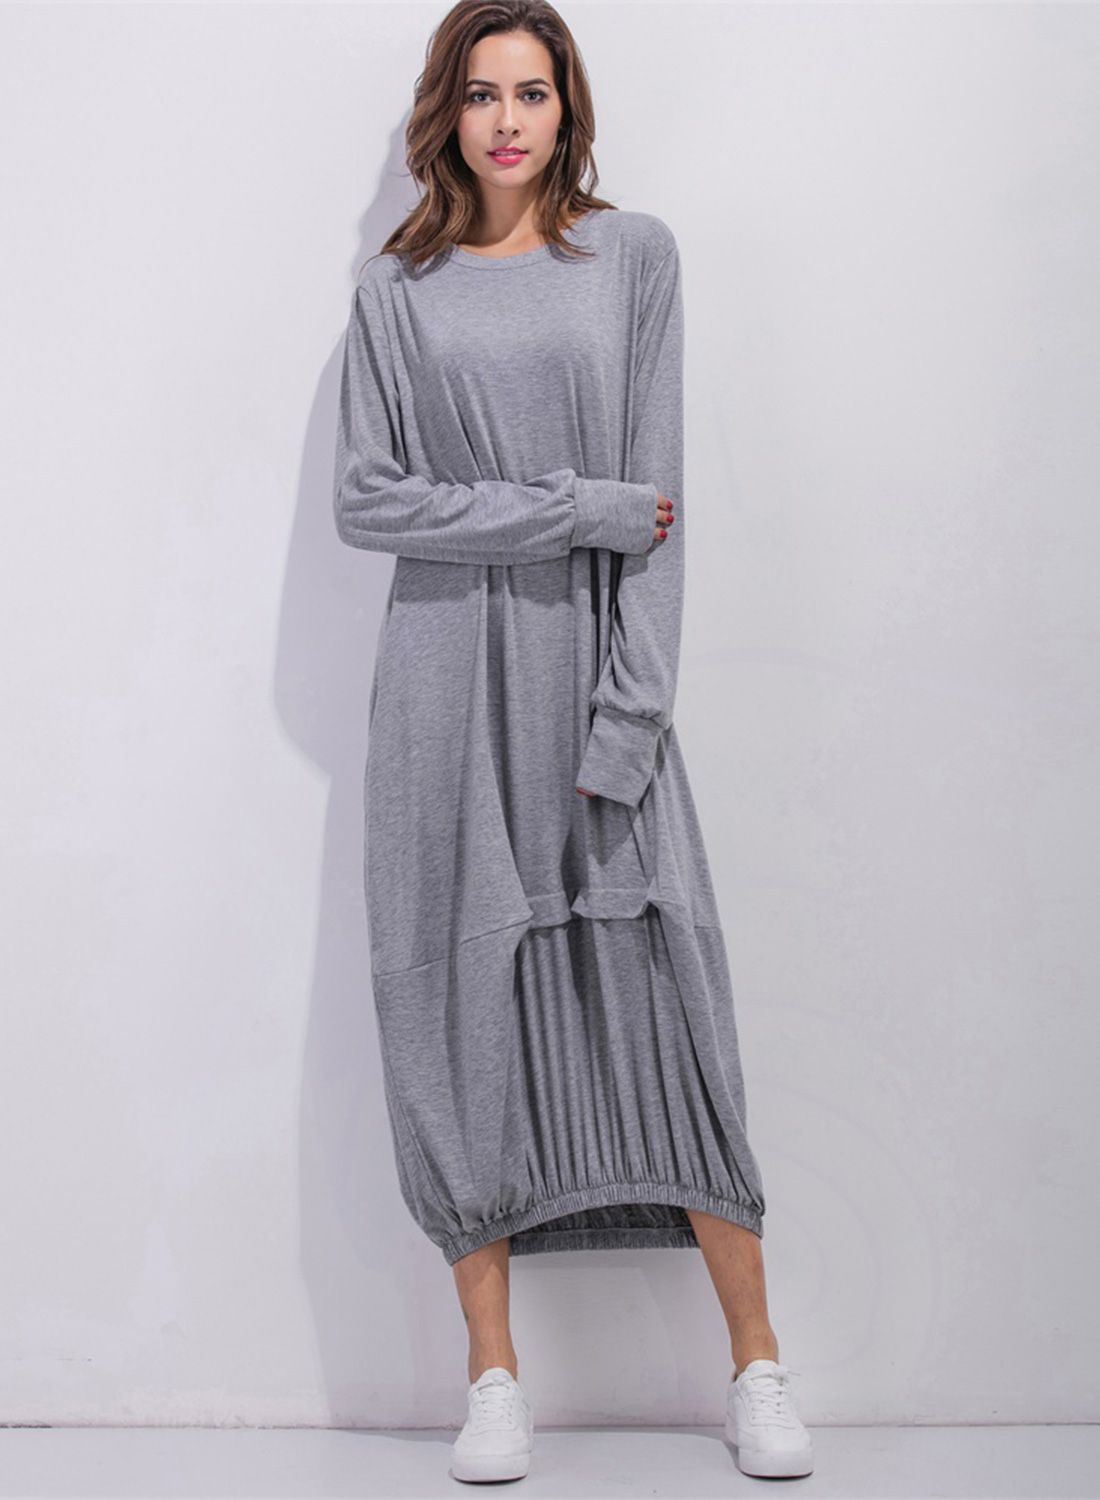 318621315d The dress is featuring round neck, pullover style, long sleeve, solid  color, loose fit and maxi length.